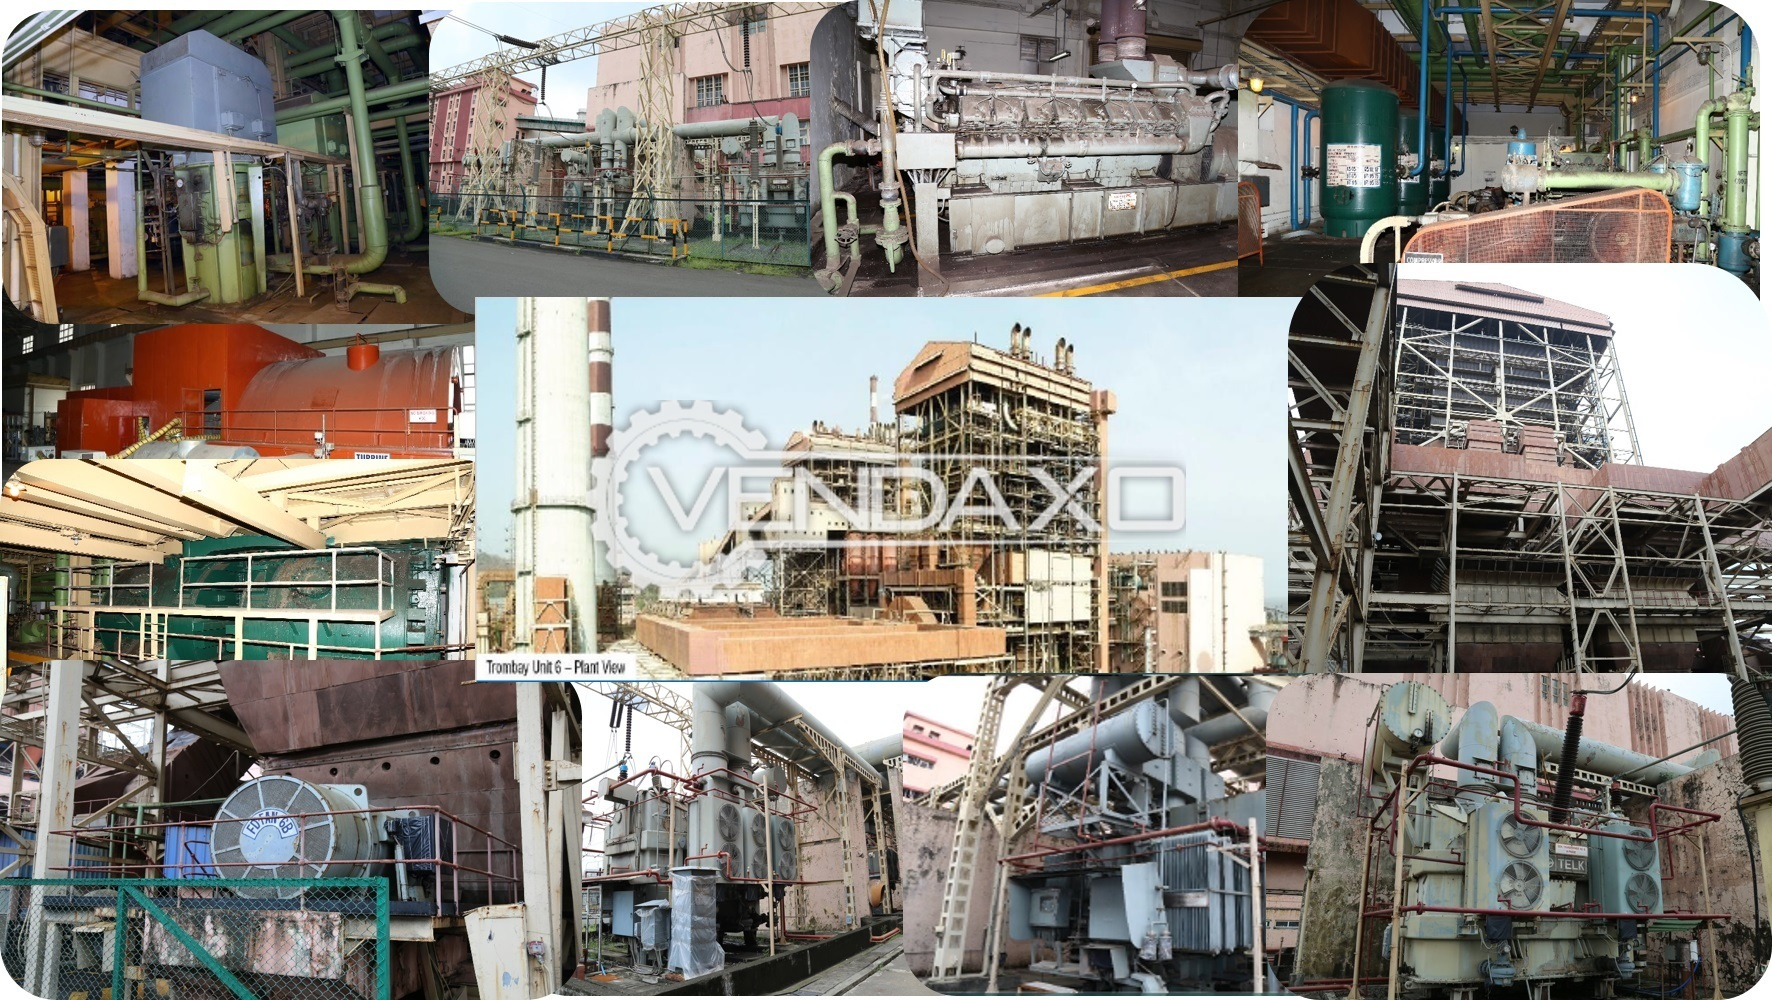 Available For Sale Oil and Gas Thermal Power Plant Equipment - 1990 Model